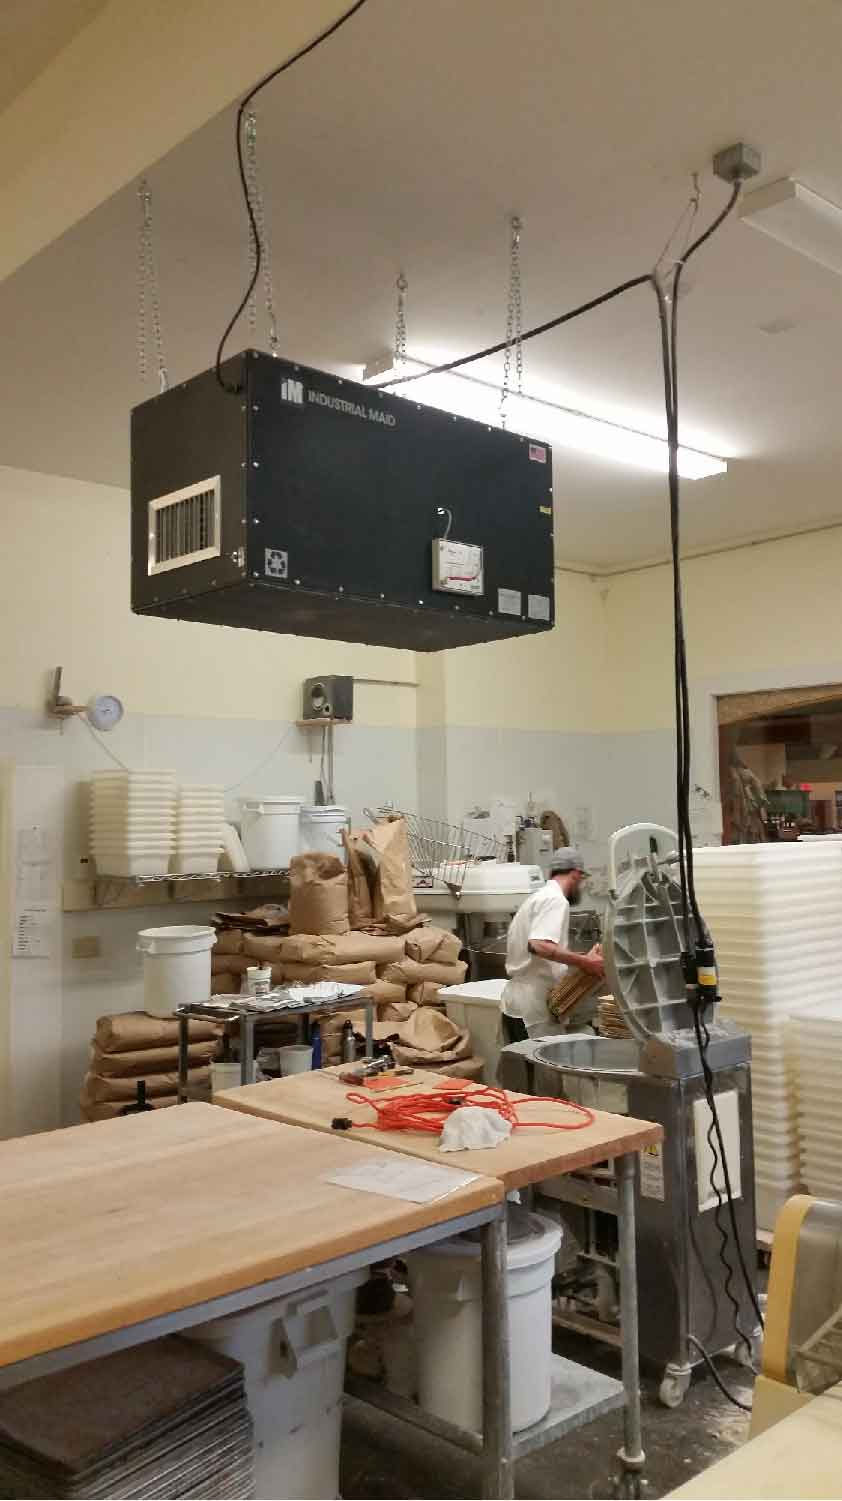 Industrial Maid Commercial Air Cleaner 2000 eliminates flour dust concern in baking company